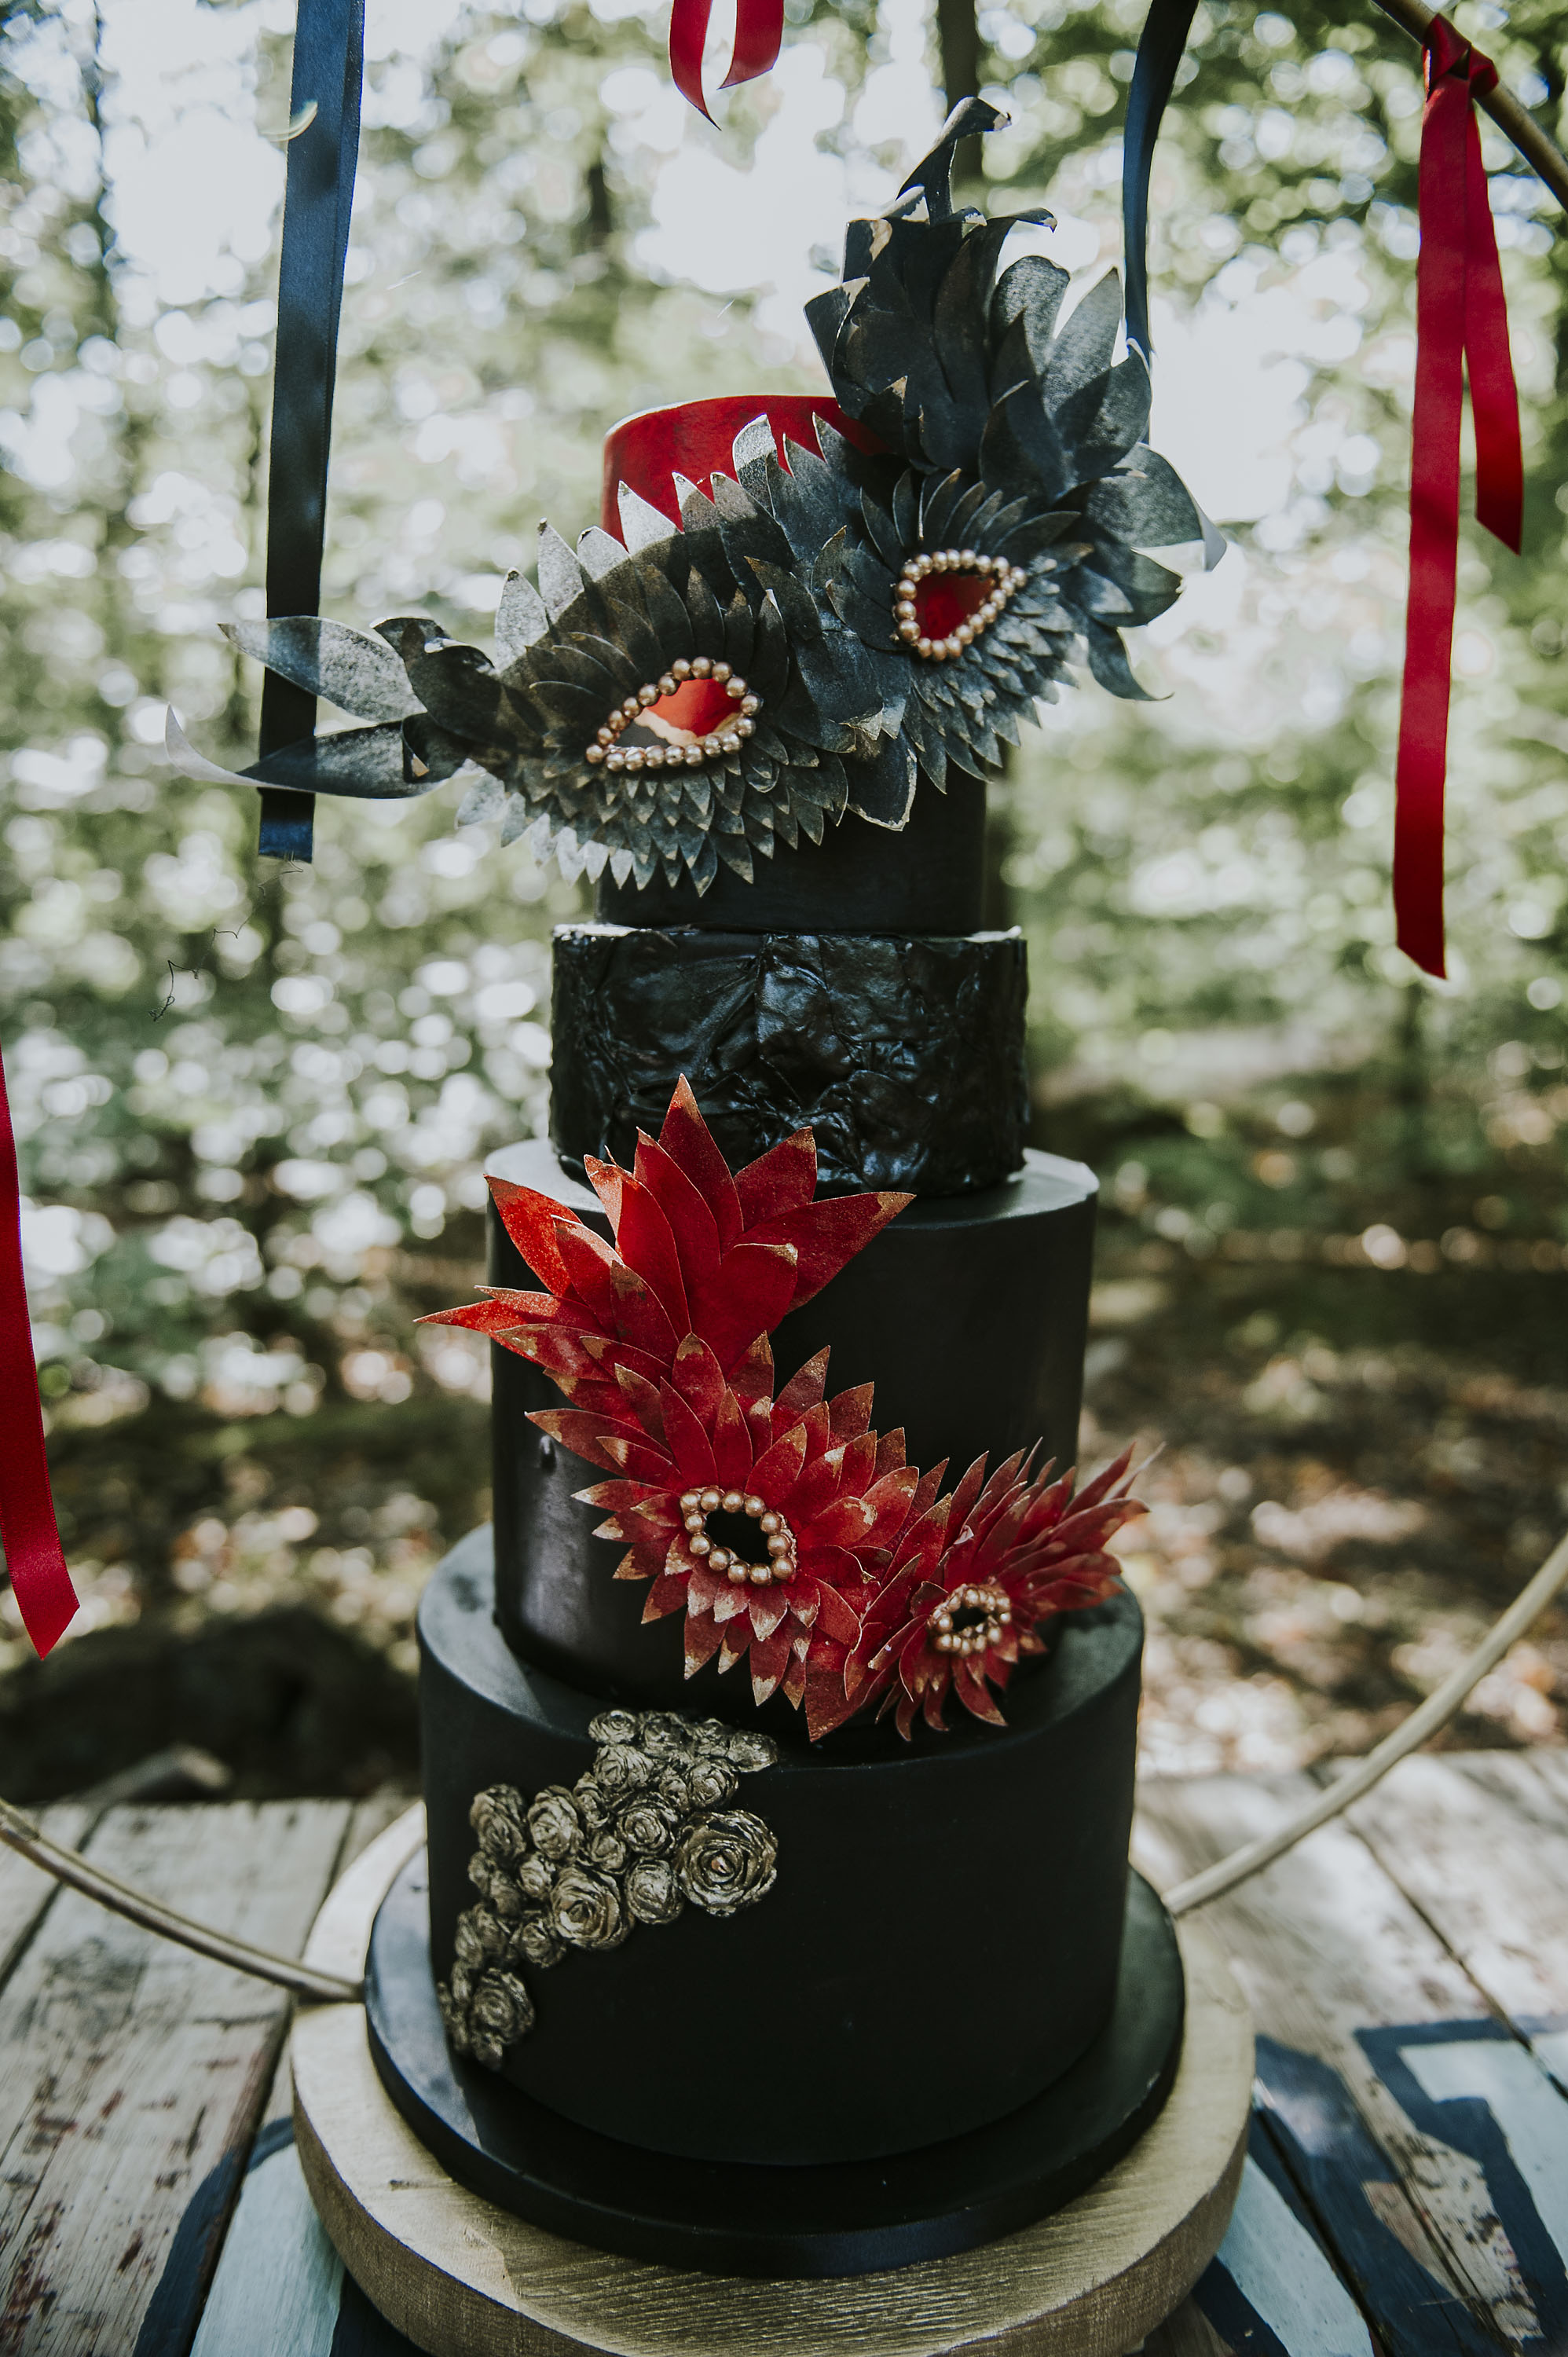 circus wedding - black and red wedding cake - black wedding cake - dramatic wedding cake - alternative wedding cake